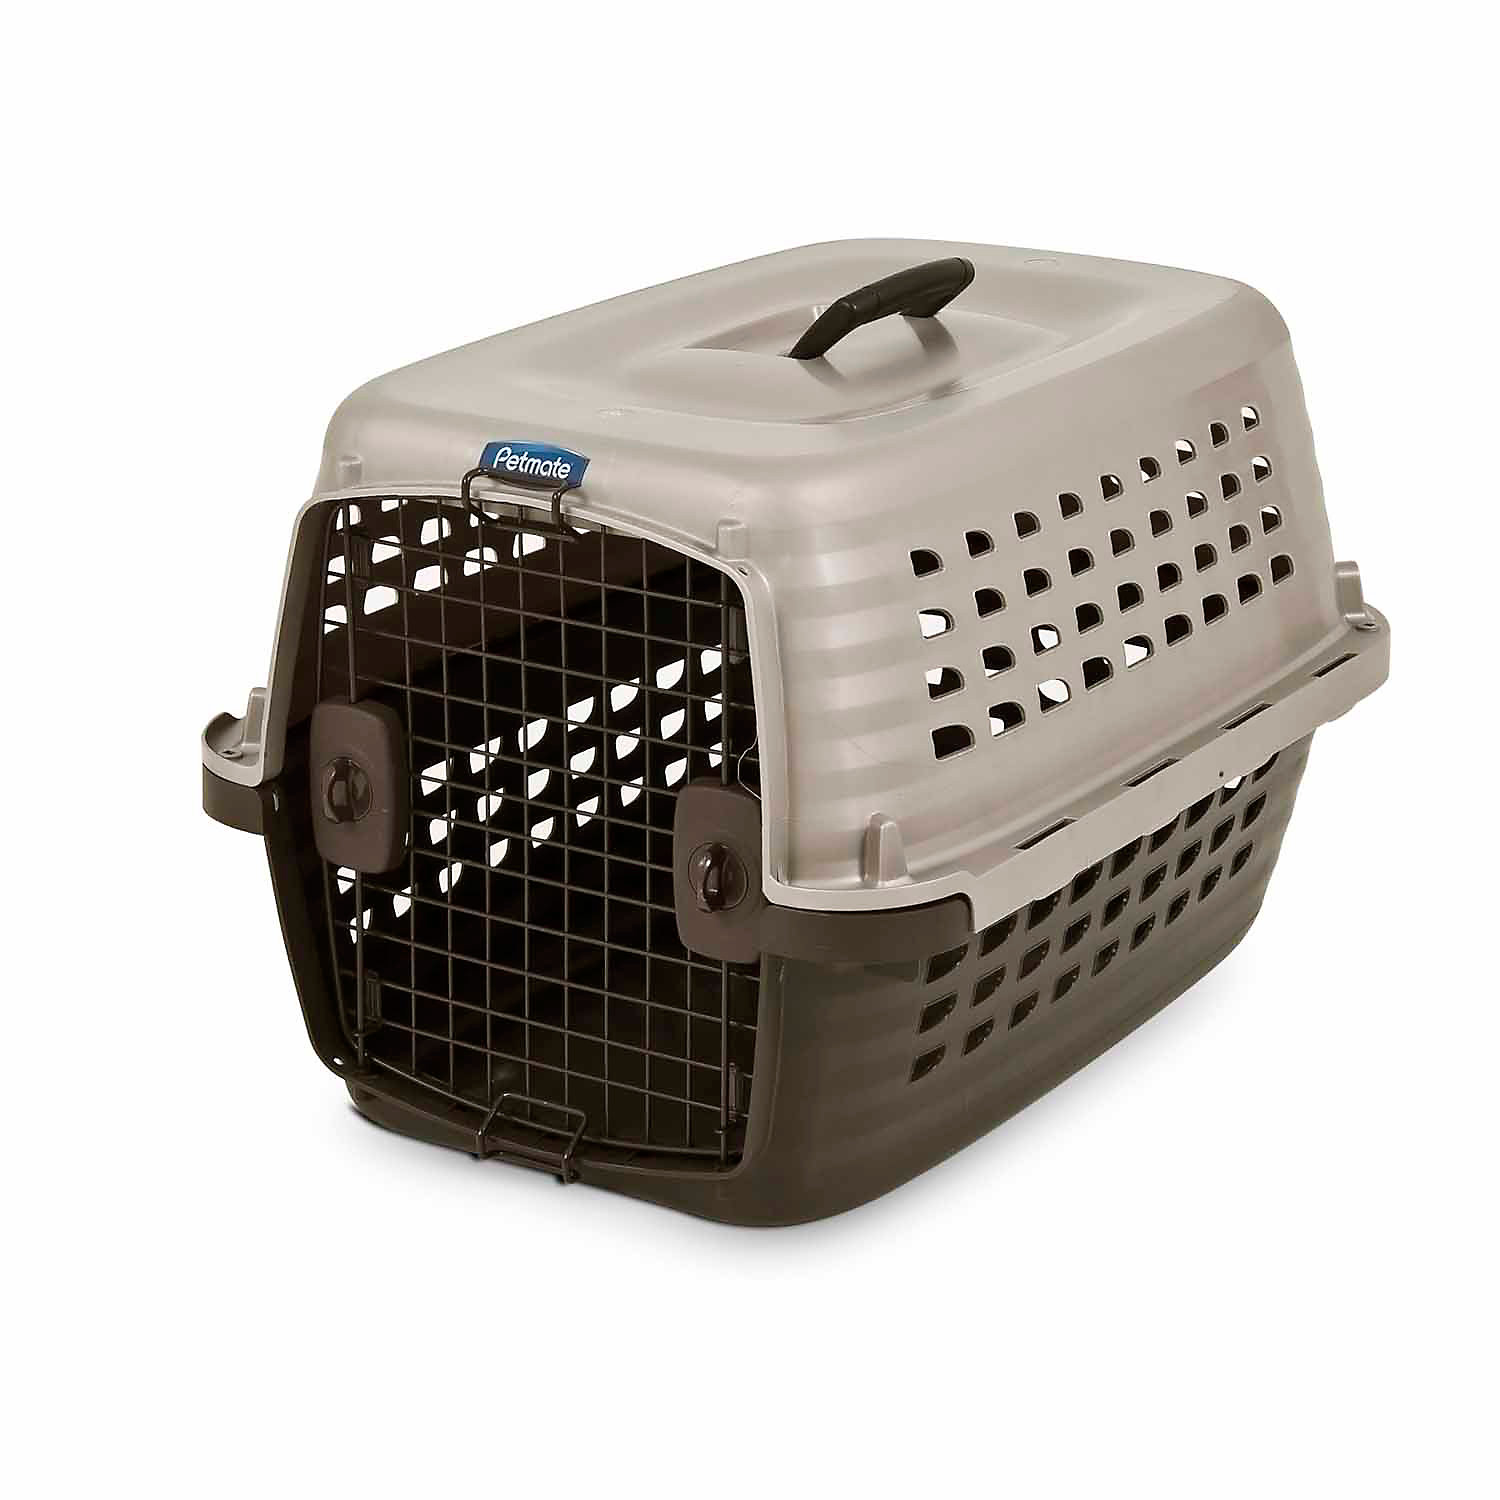 Petmate Navigator Pet Kennel 24.6 L X 16.9 W X 15 H X Small Brown